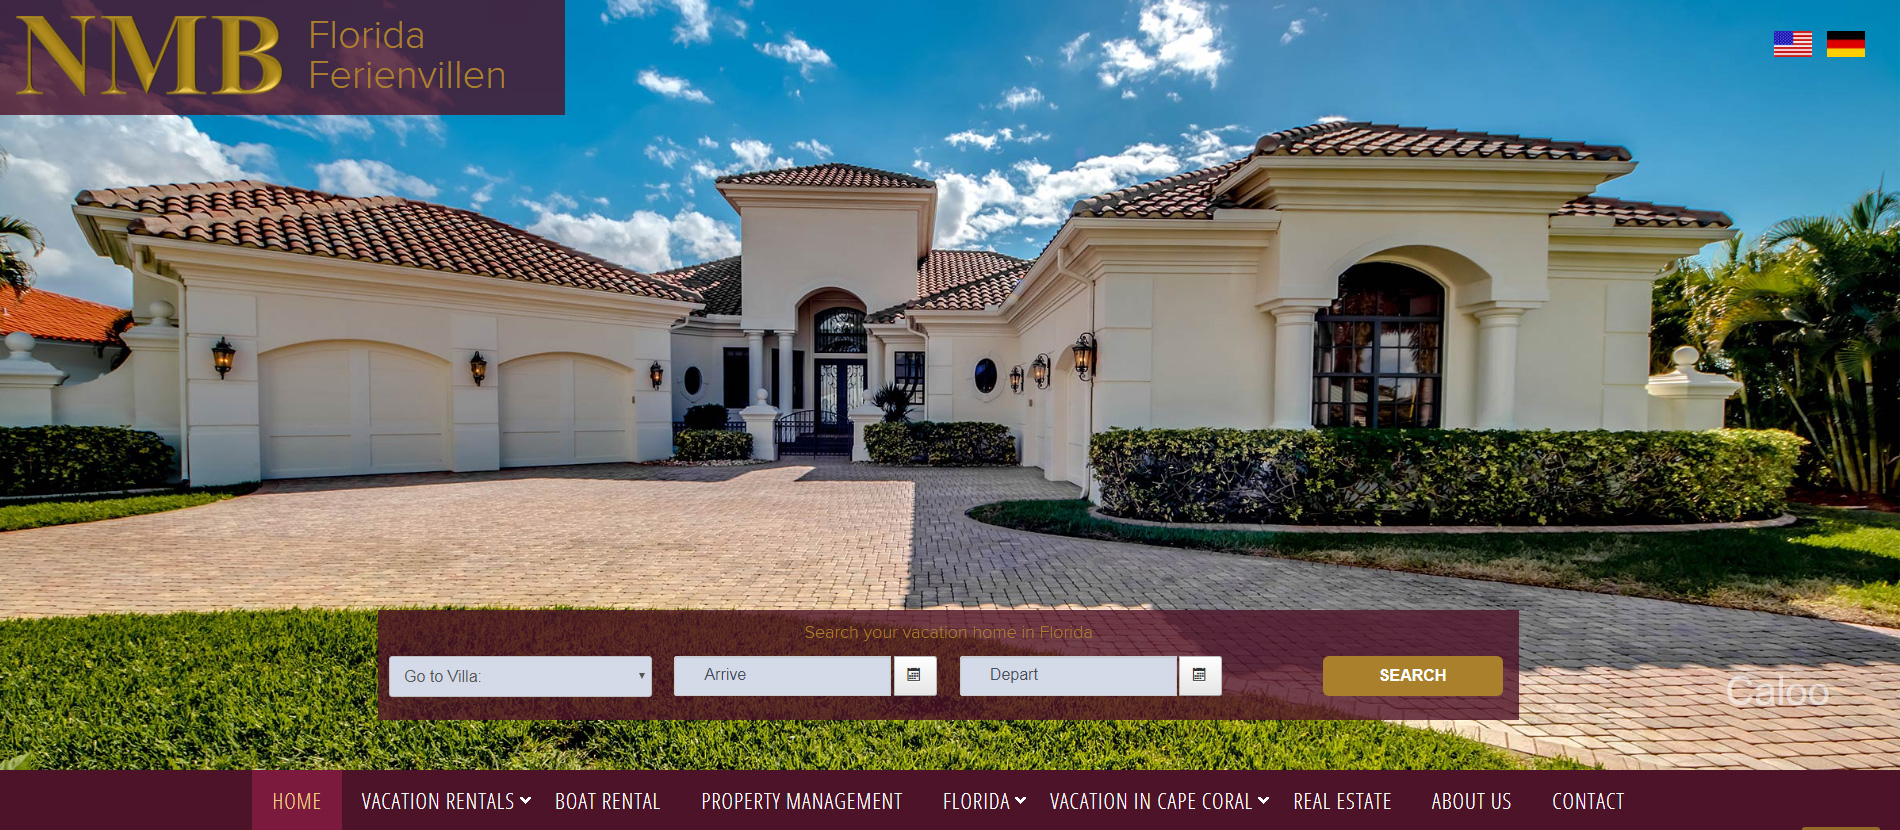 NMB Florida Vacation Rentals